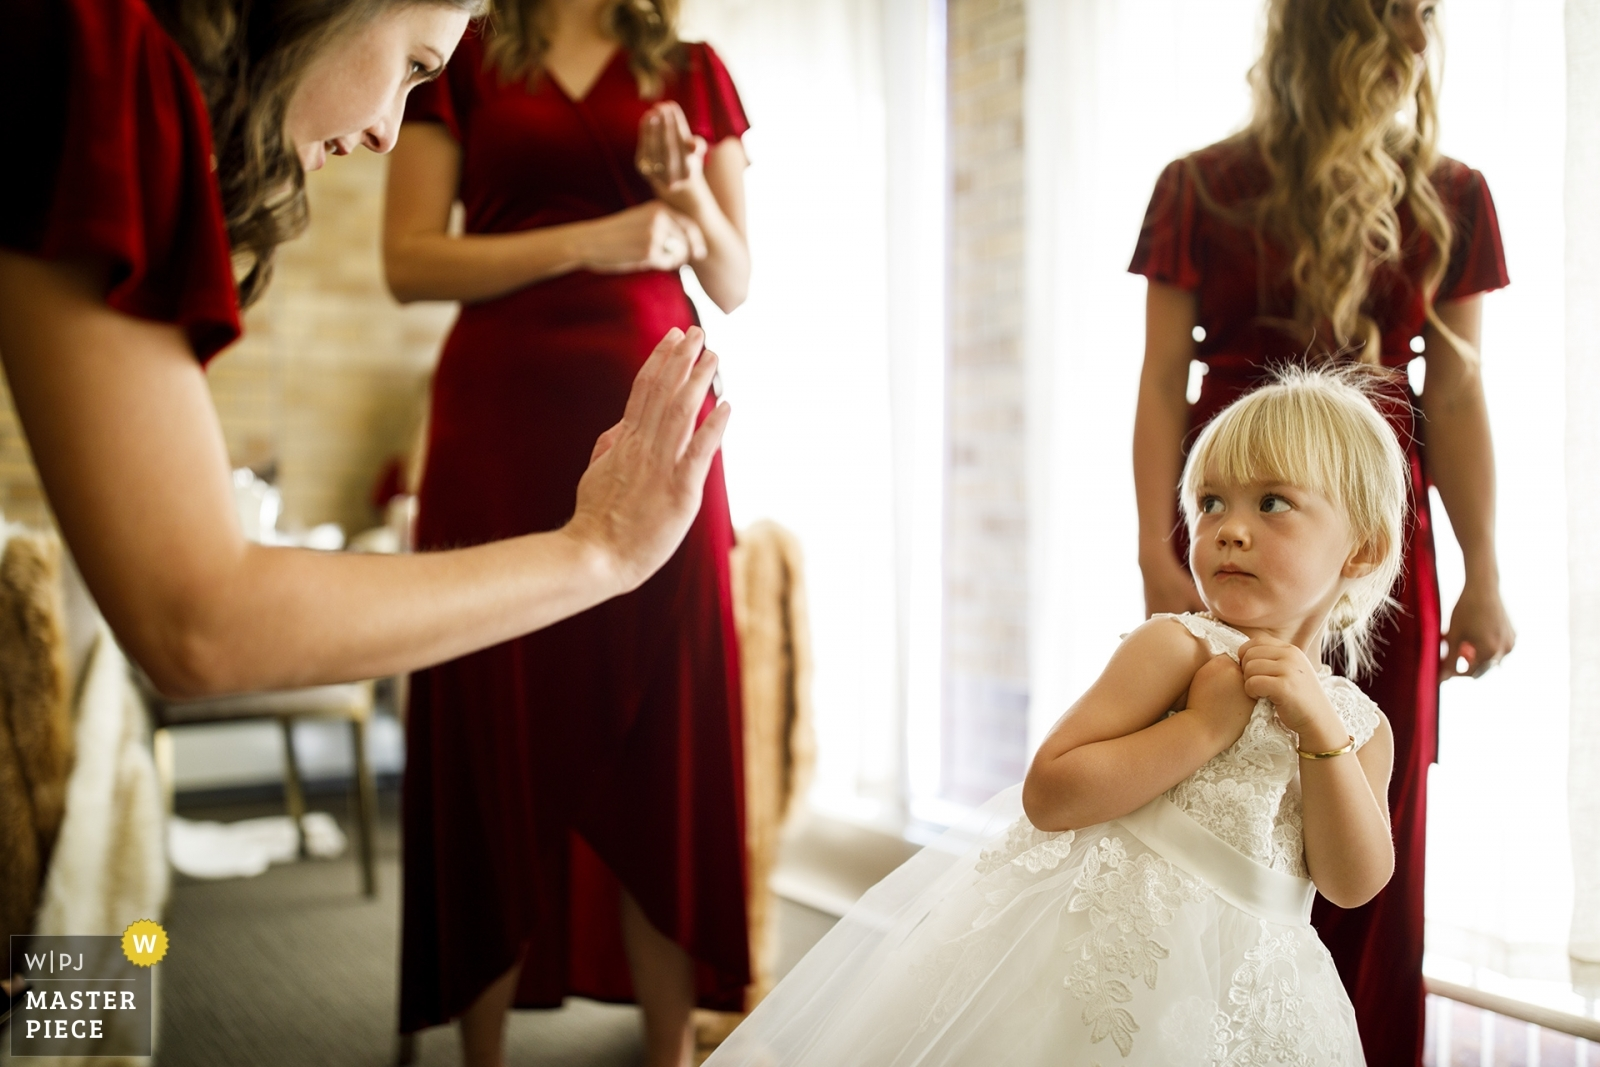 The flower girl reacts when a bridesmaid prompts her for a high-five while getting ready for the wedding. - Denver, Colorado Wedding Photography -  | Our Lady of Lourdes Catholic Church, Denver, CO